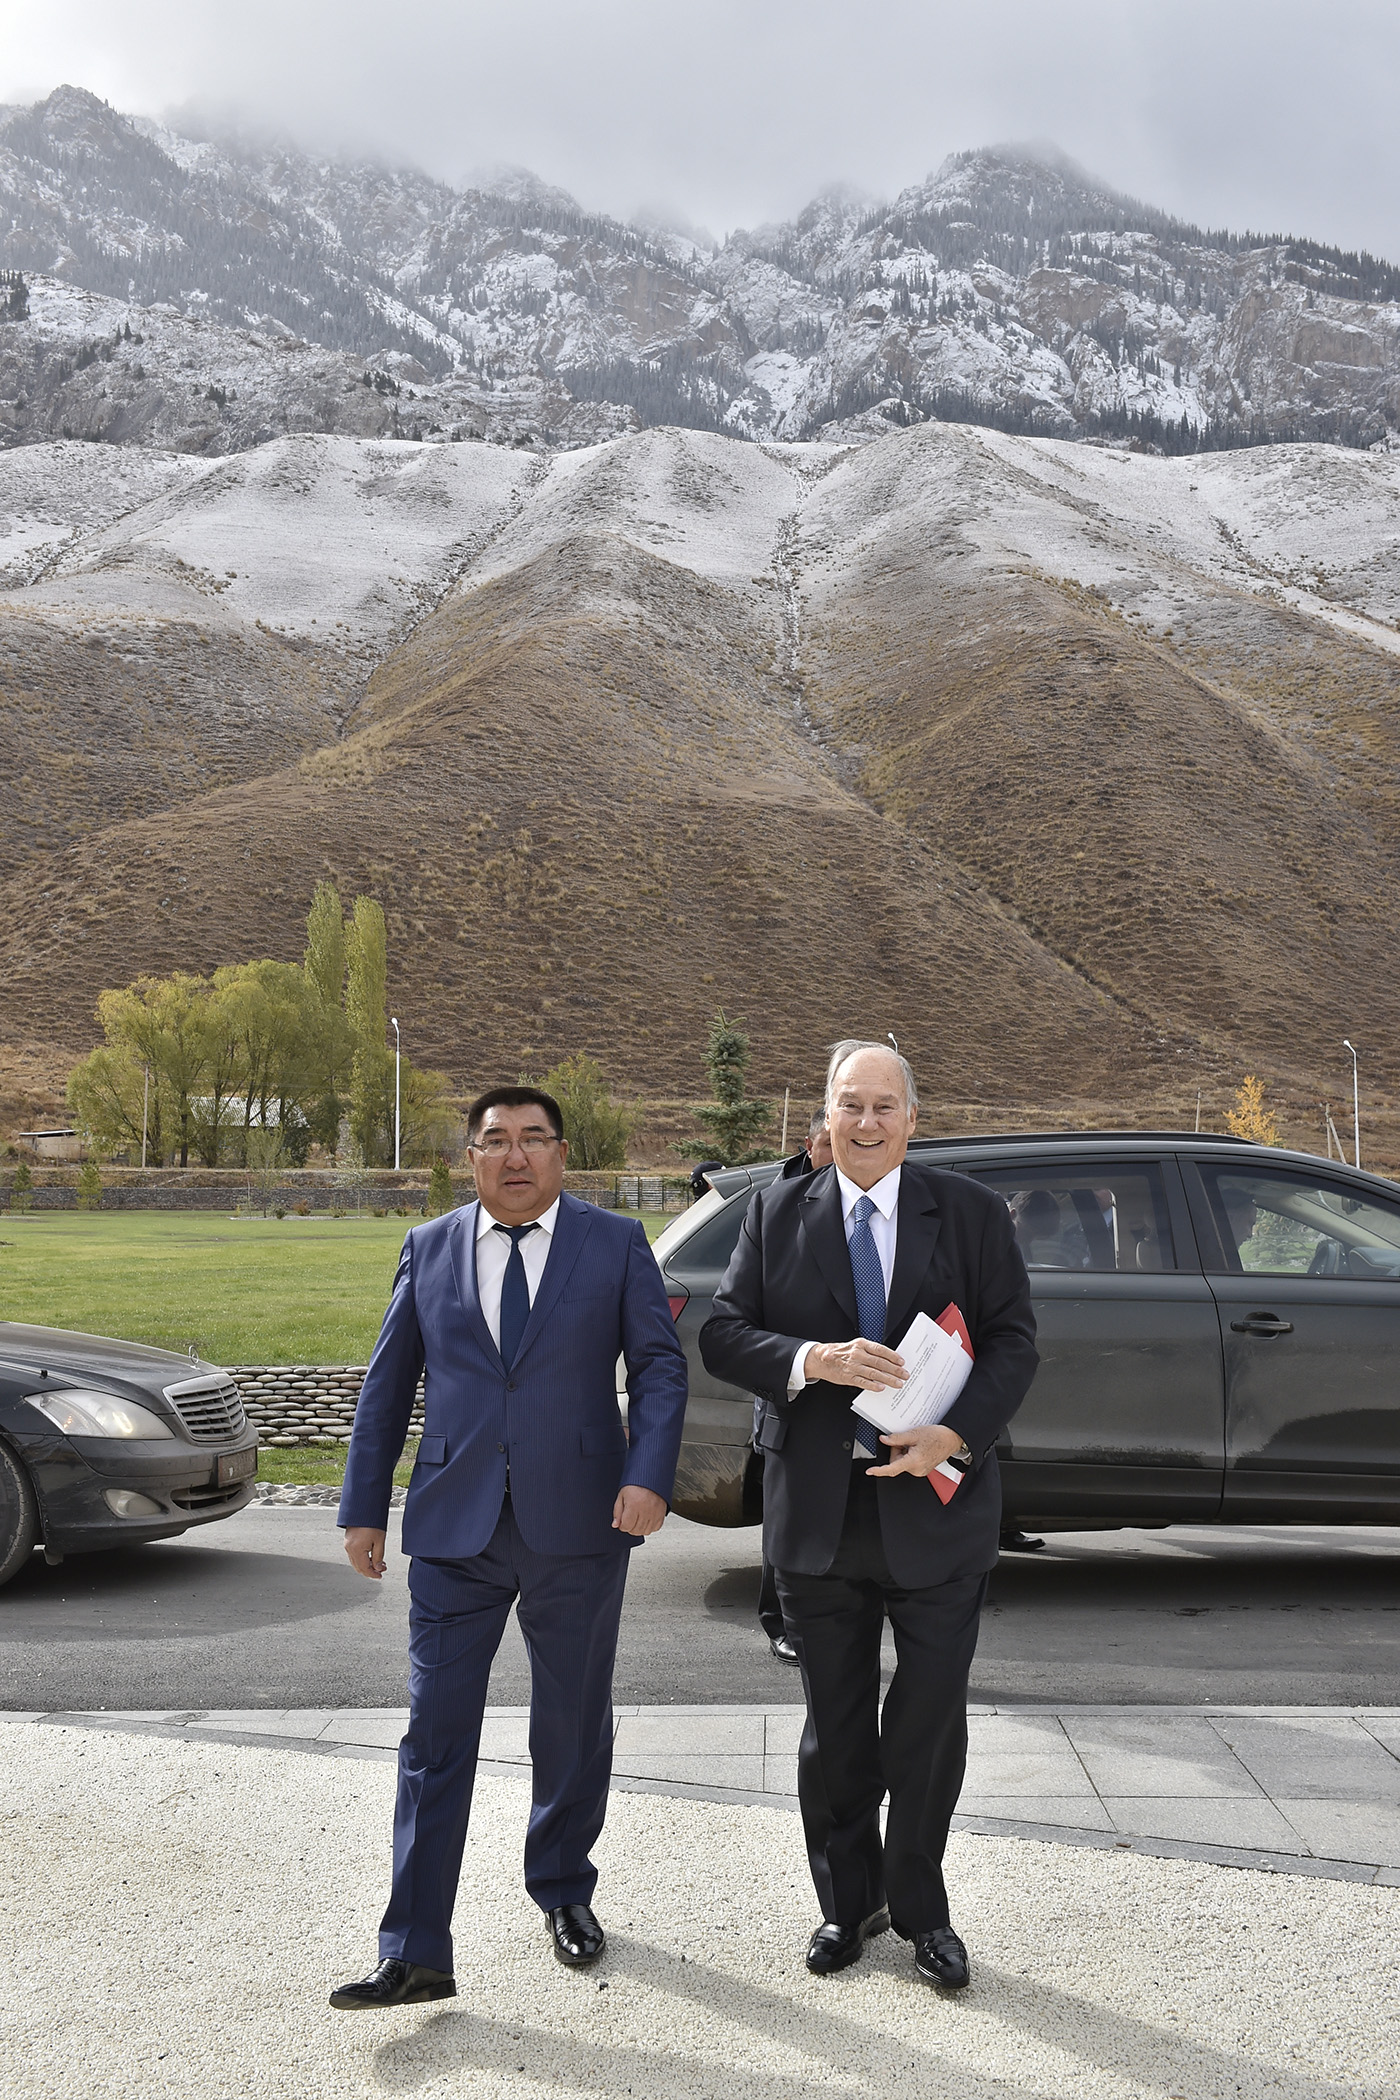 His Highness the Aga Khan, Mawlana Hazar Imam, escorted by Naryn Governor Amanbay Kayipov, arrives to the University of Central Asia Naryn Campus